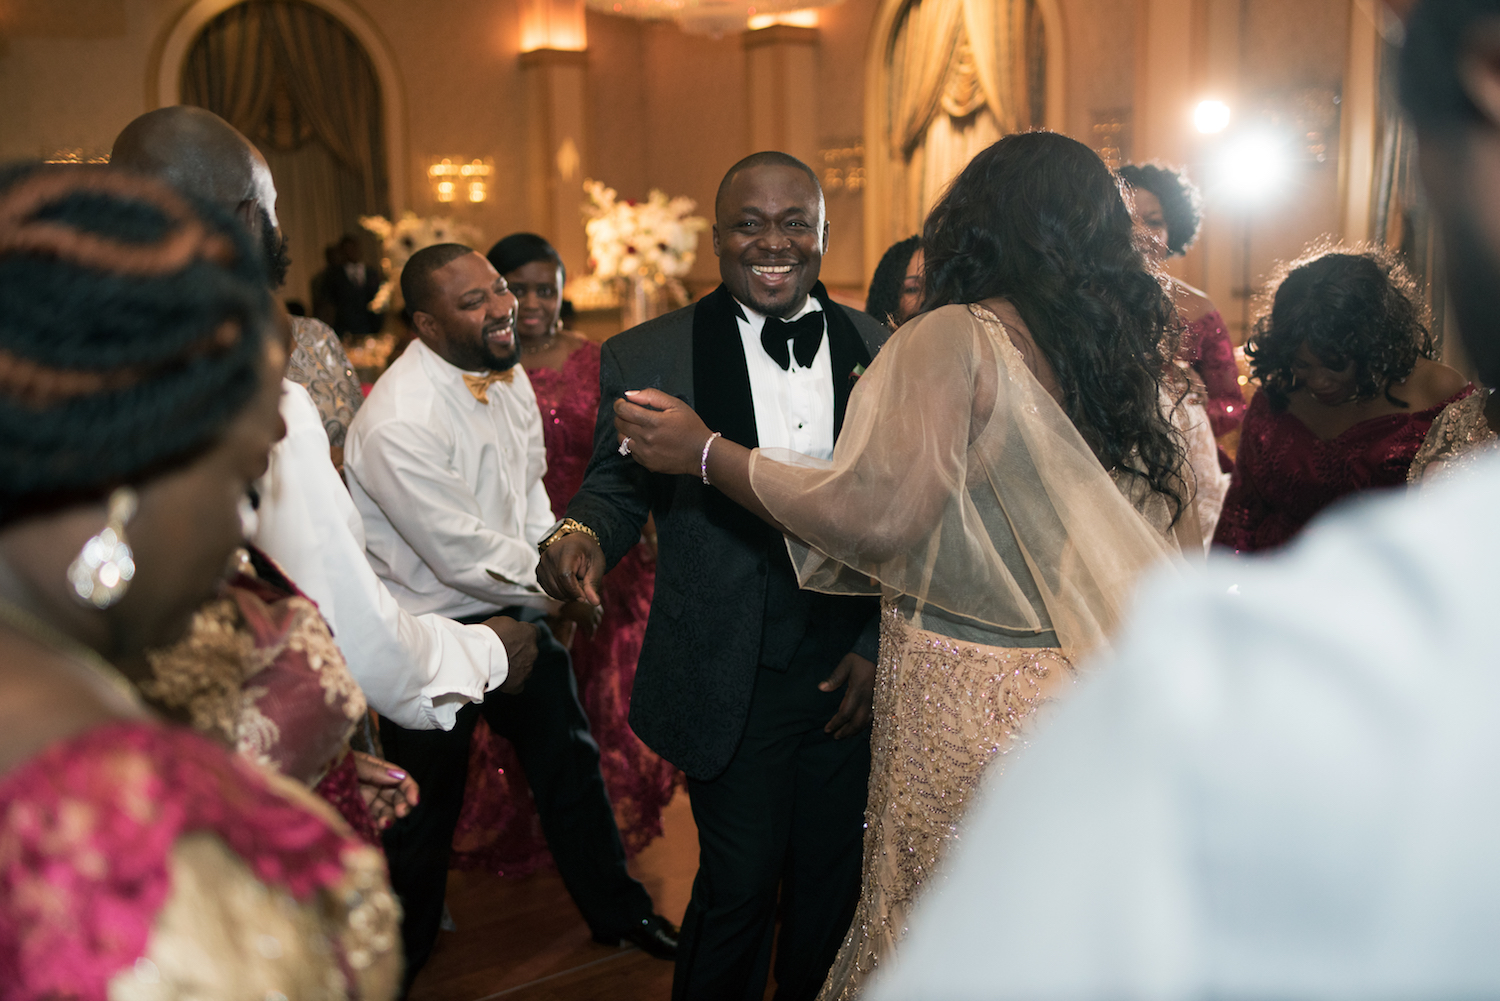 anita&dela-dancing-with-guests-wedding-photography-nj